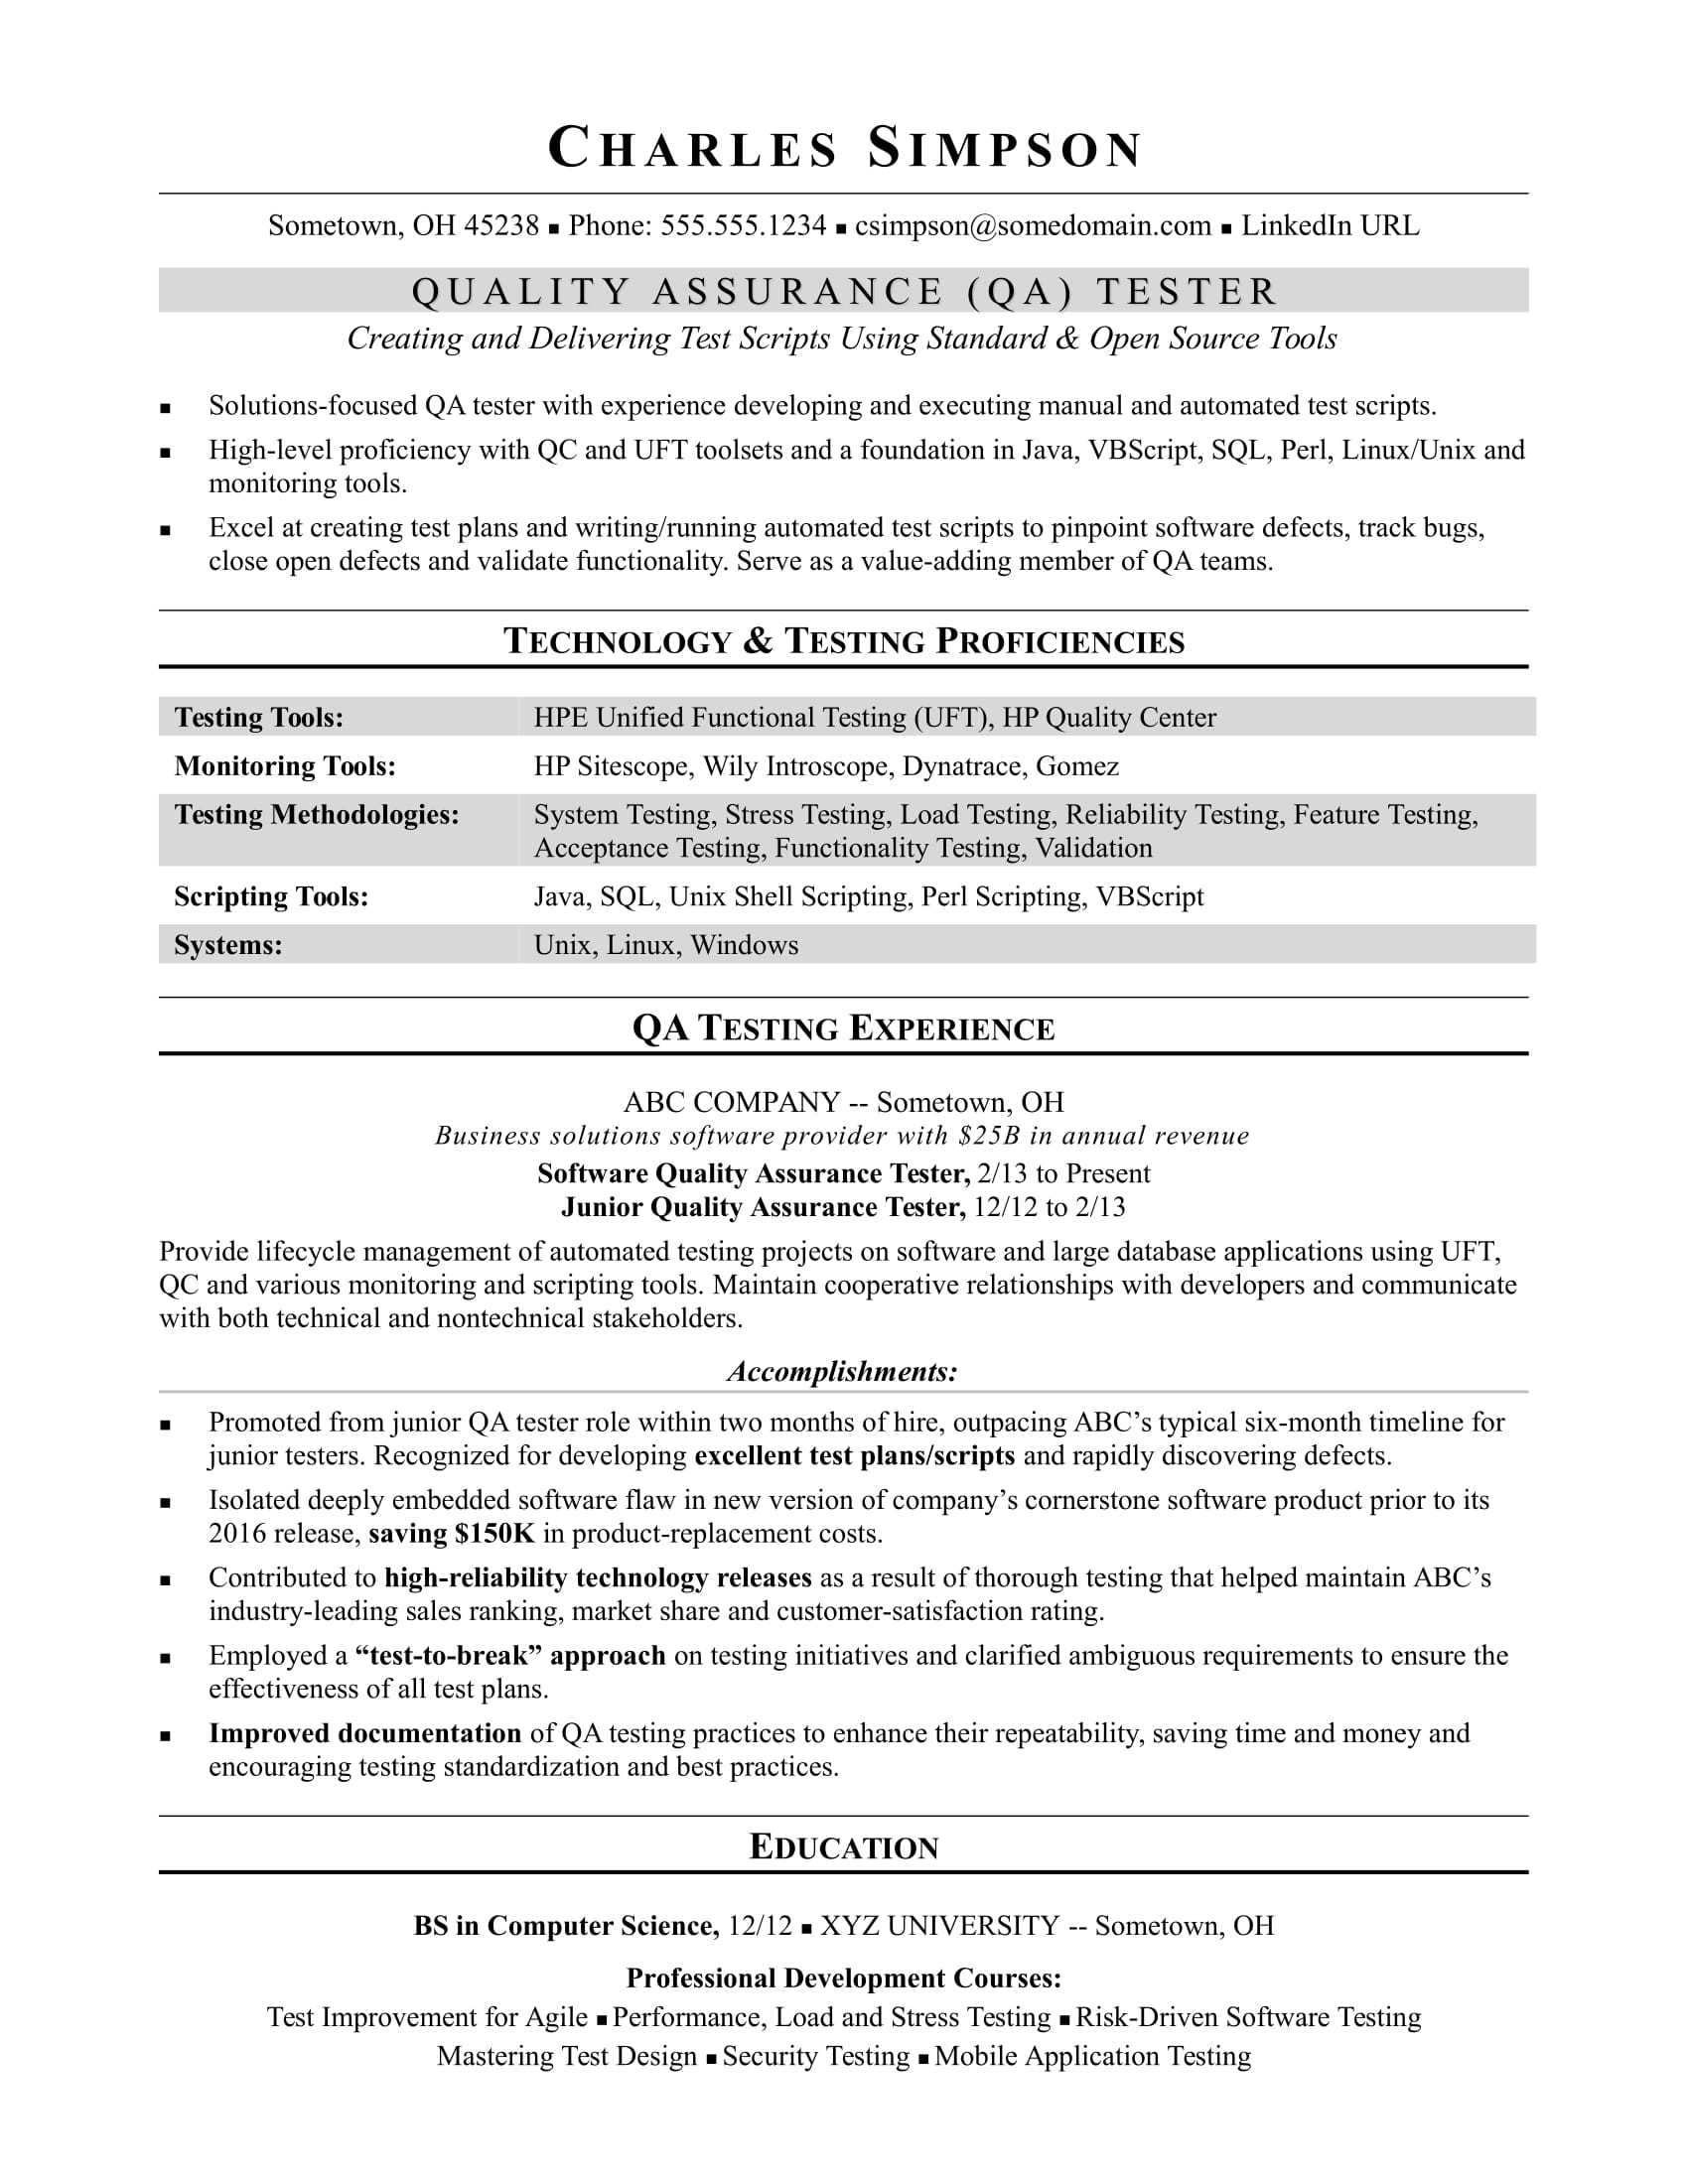 sample resume for midlevel qa software tester monster experienced test engineer expat Resume Sample Resume For Experienced Test Engineer